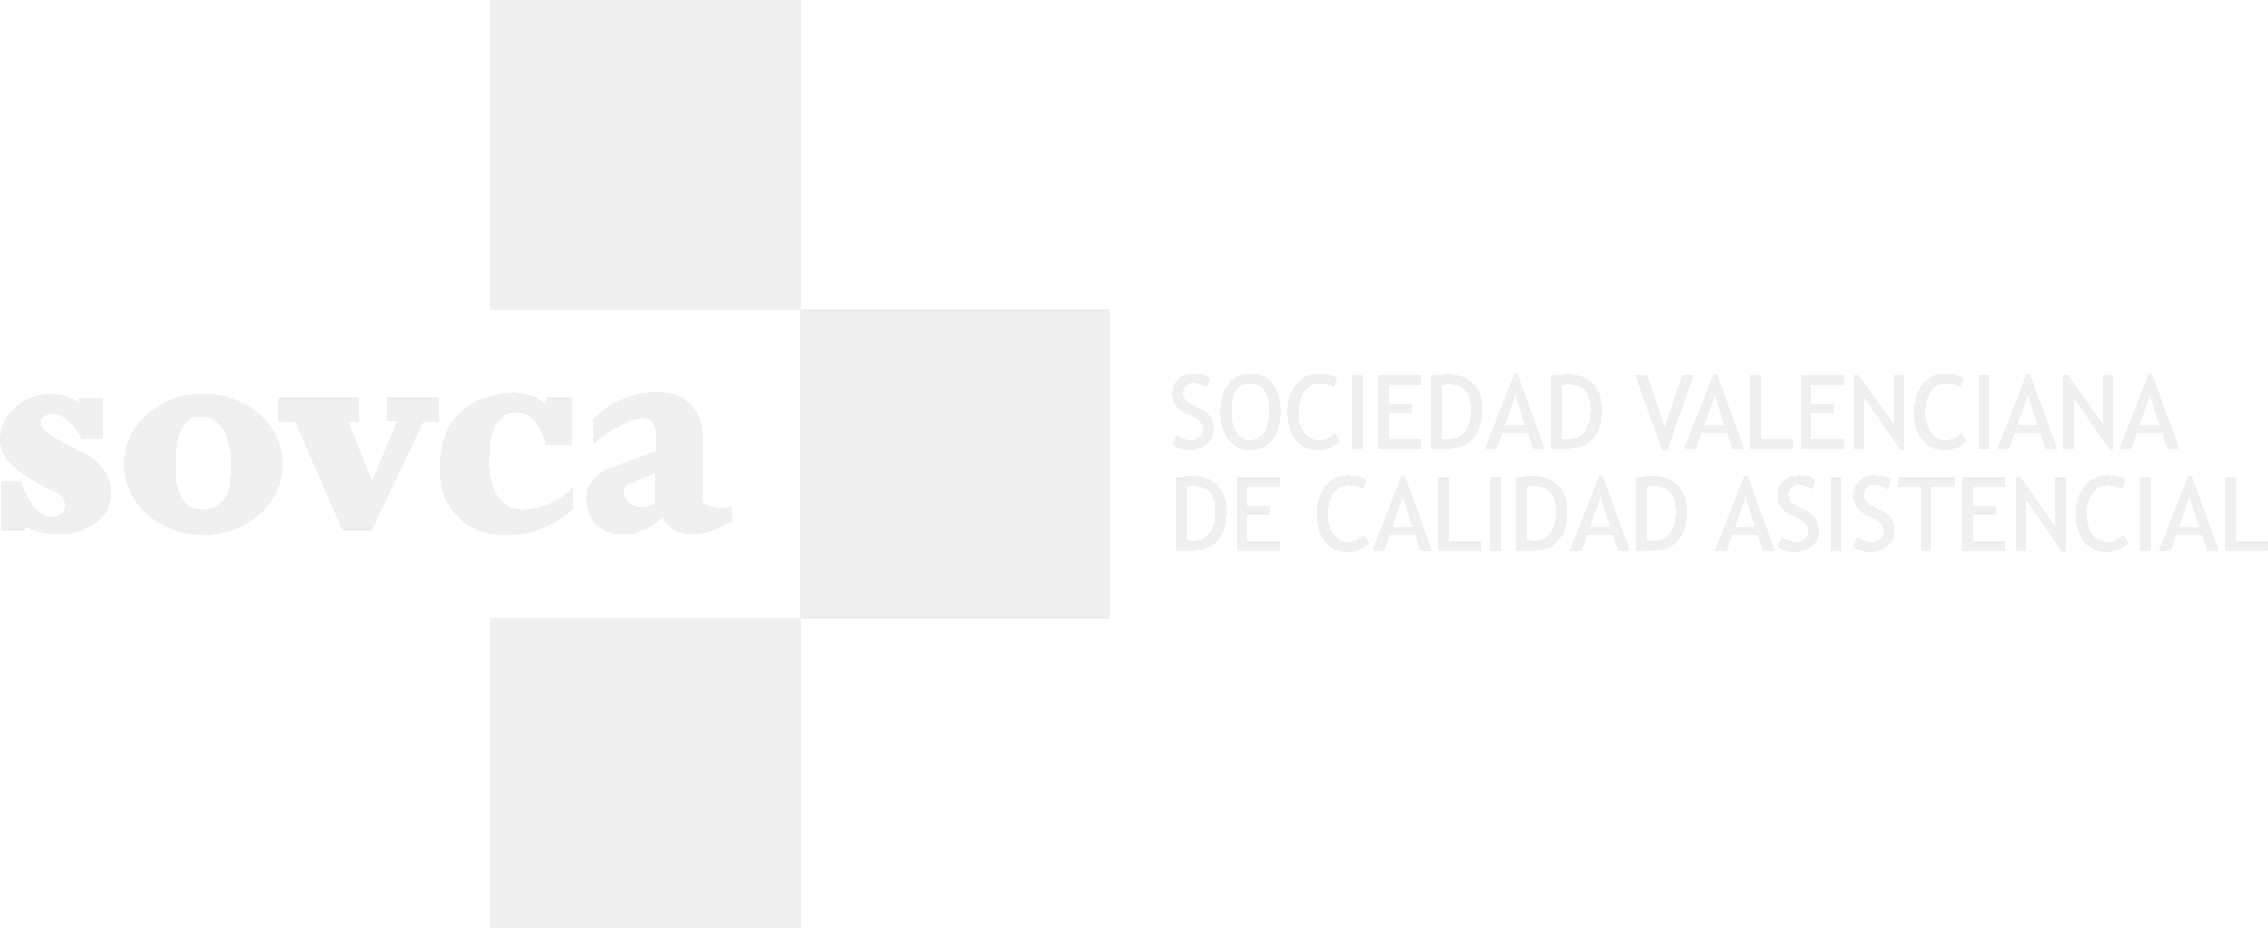 Sociedad Valenciana de Calidad Asistencial (SOVCA)